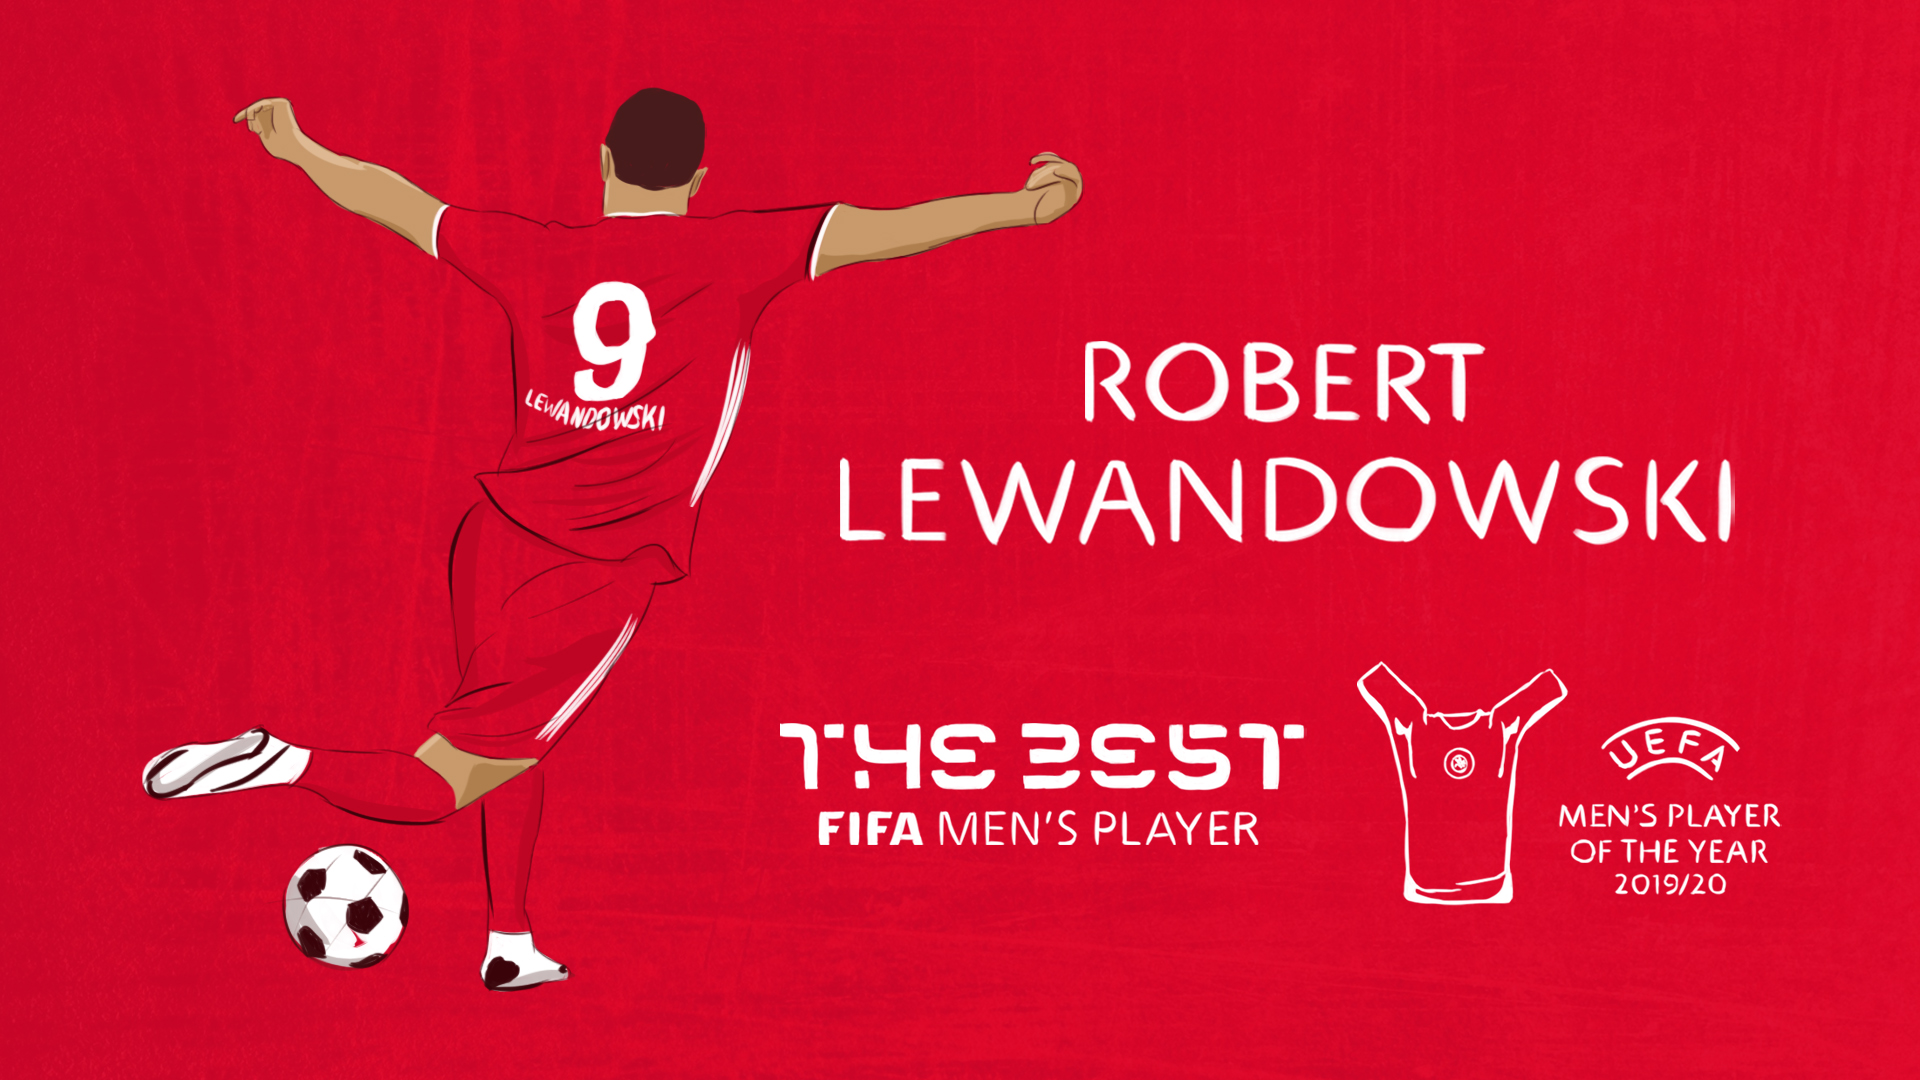 Robert Lewandowski - Smado Animation